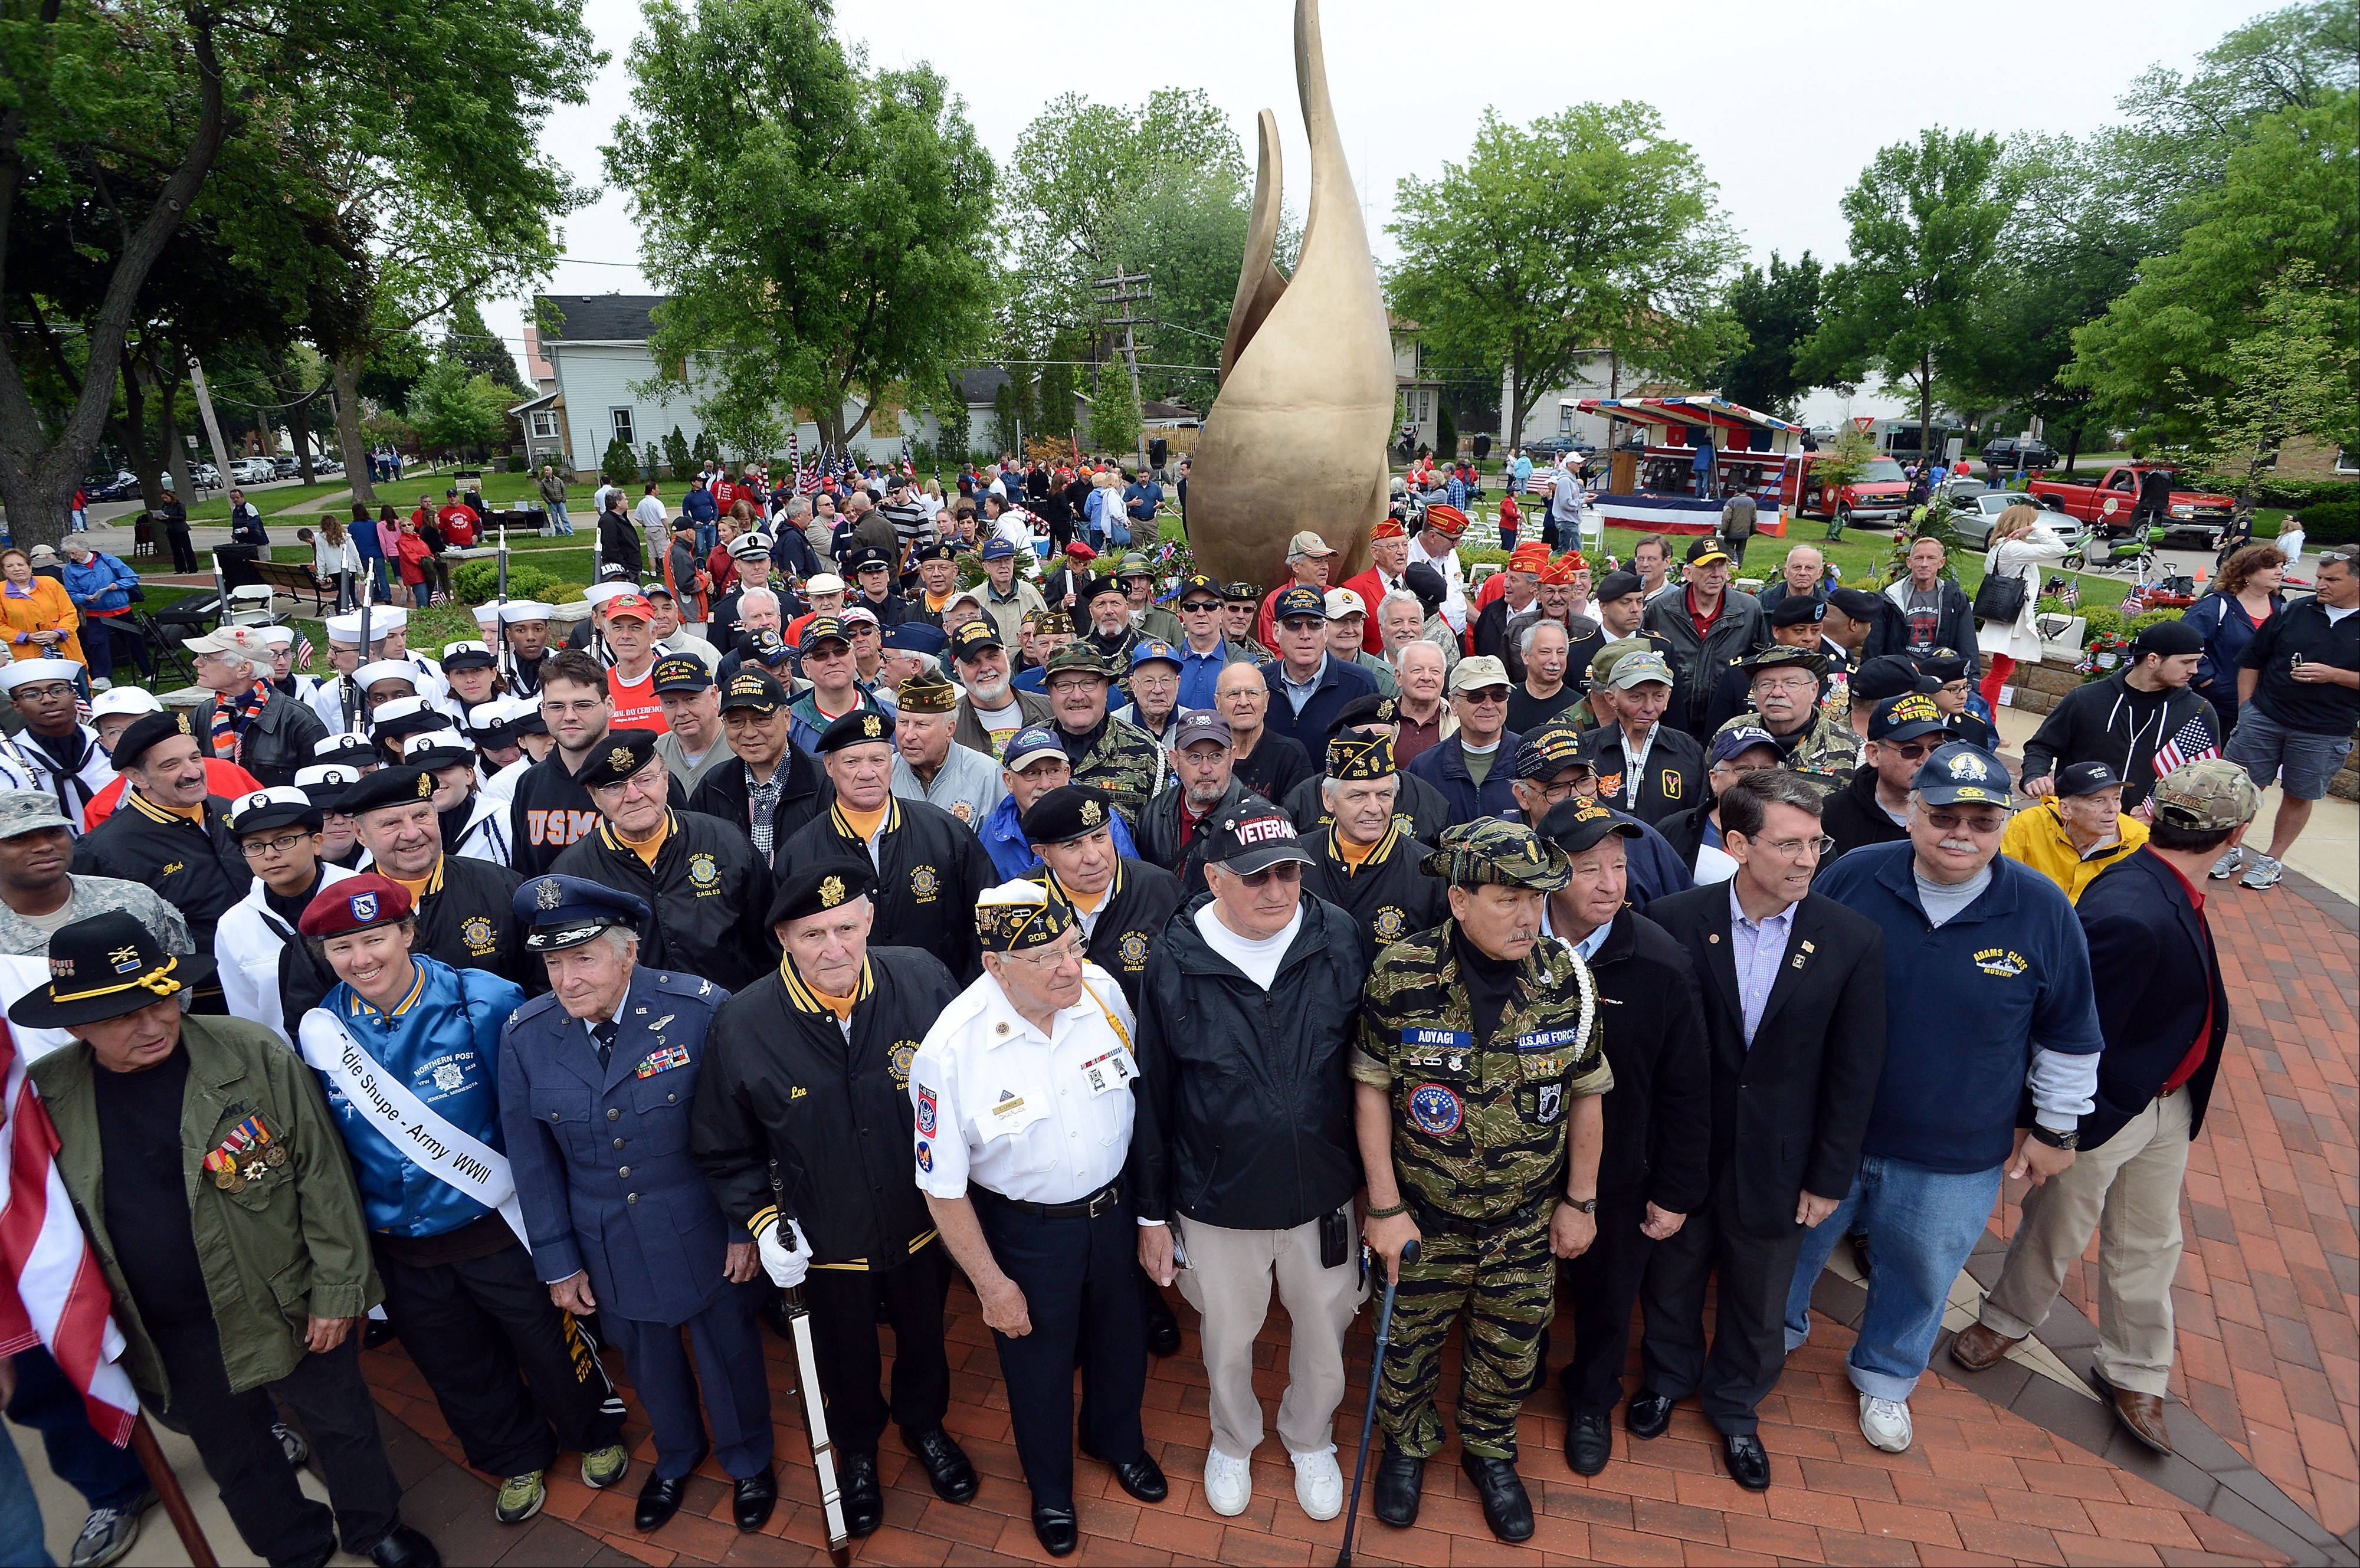 Veterans from all branches of the military gather Monday under the eternal flame in Memorial Park as part of Arlington Heights' Fallen Heroes Memorial Day Ceremony.